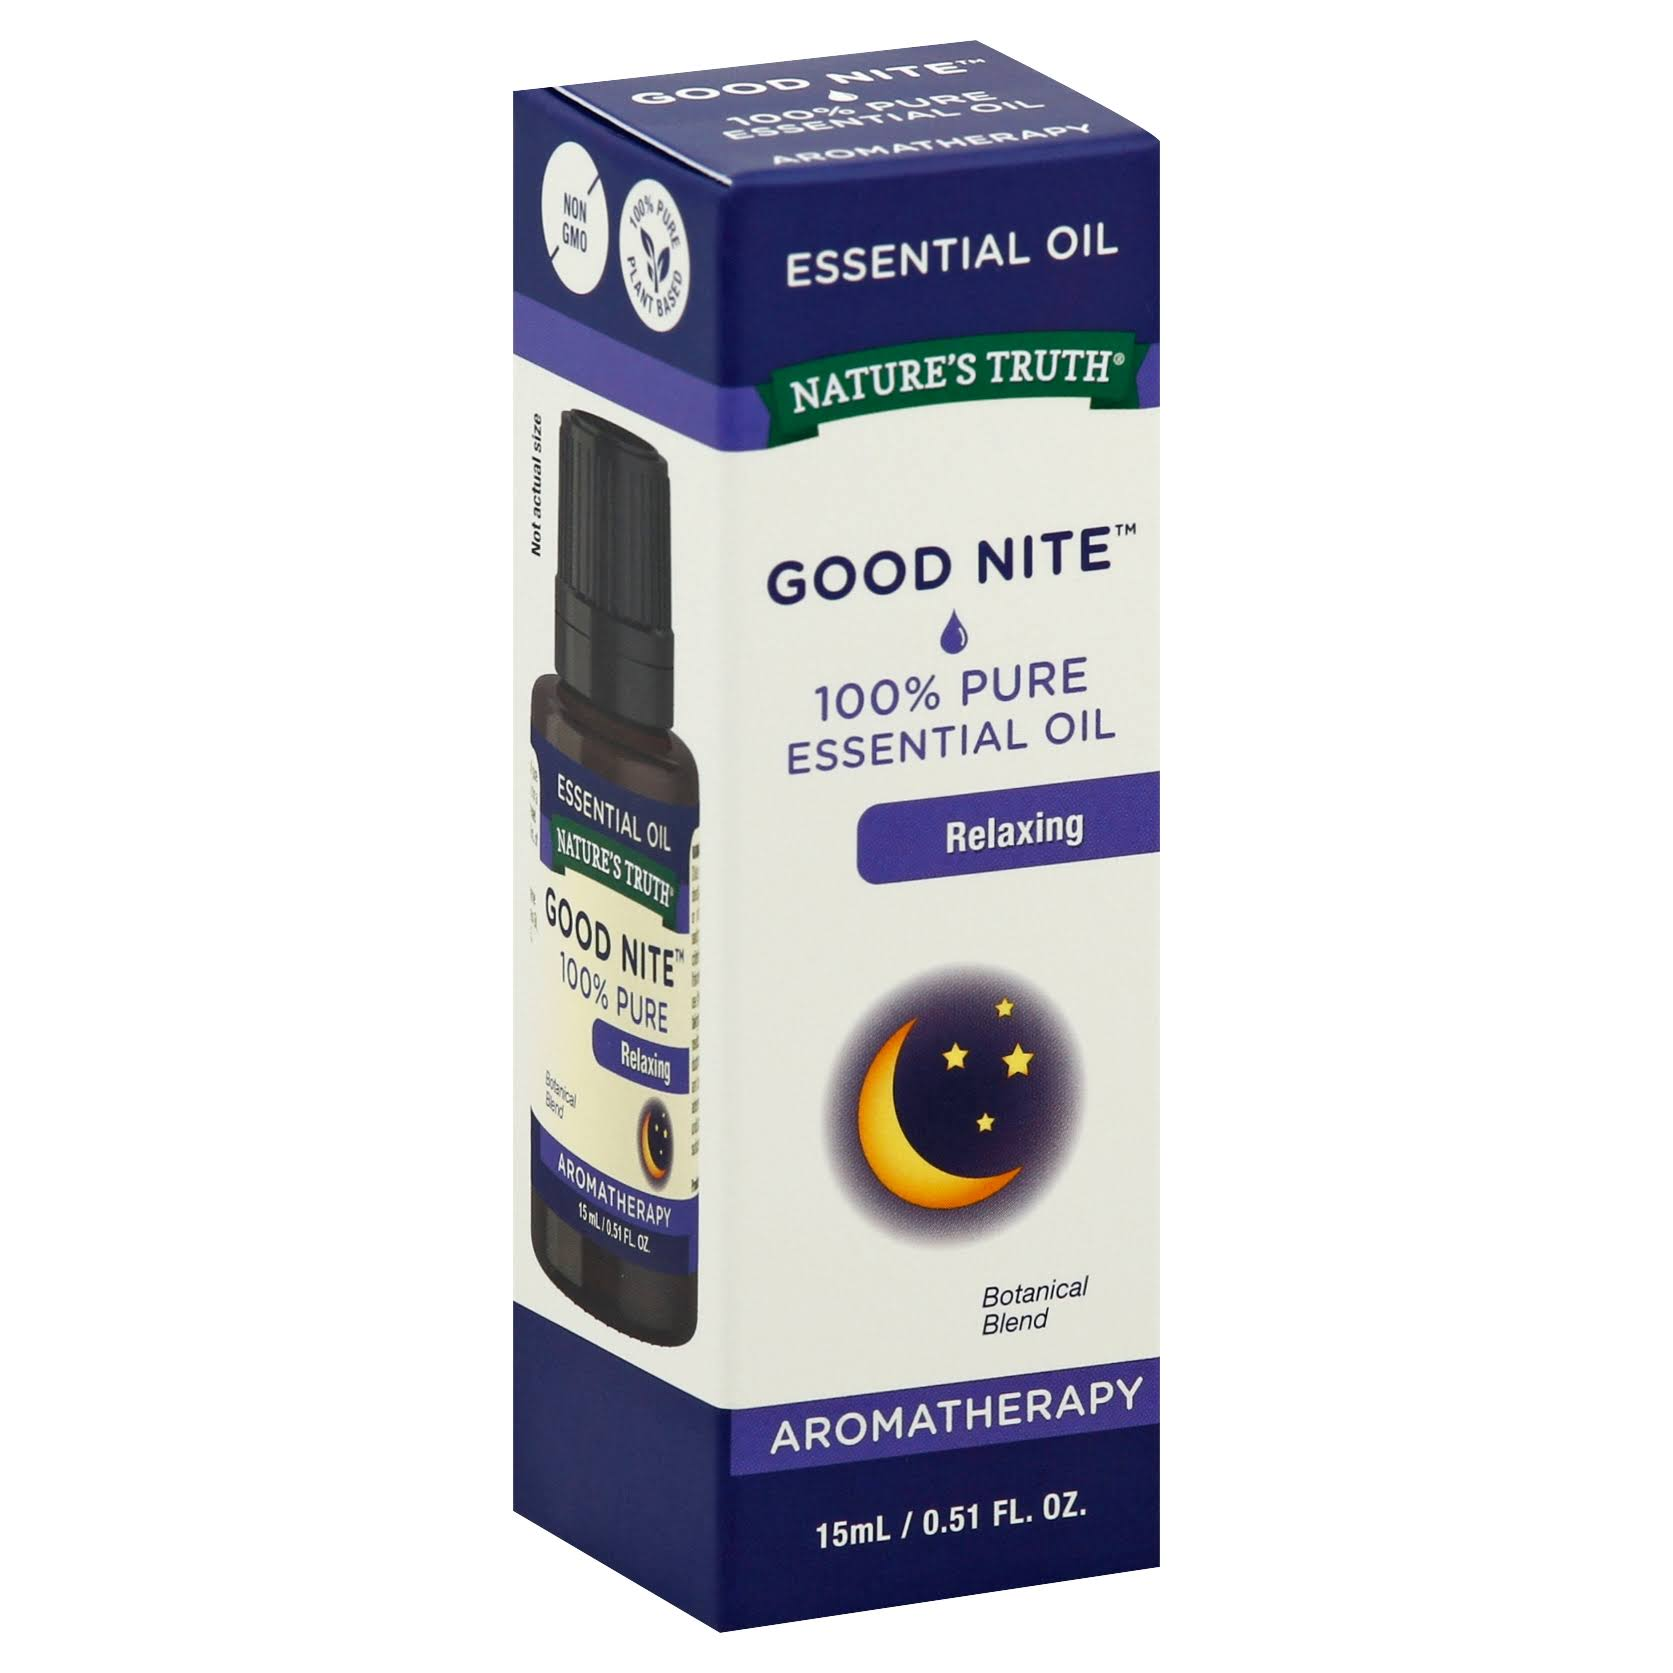 Nature's Truth Good Nite Aromatherapy Essential Oil - Calming, 0.51oz